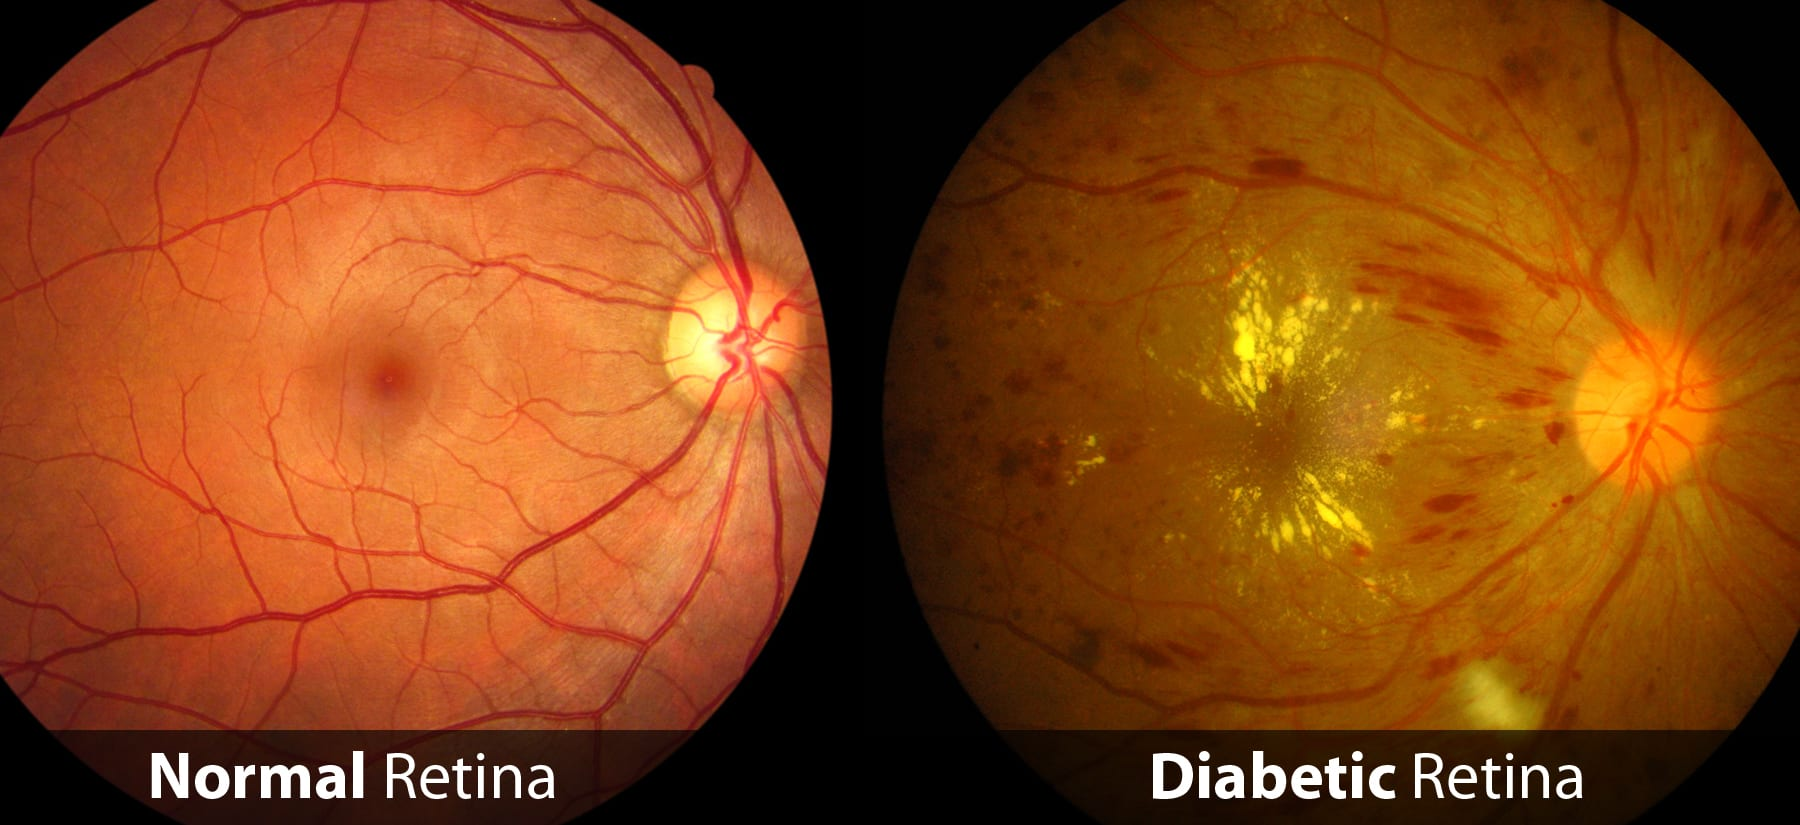 a photo comparing the look of a normal retina and a diabetic retina